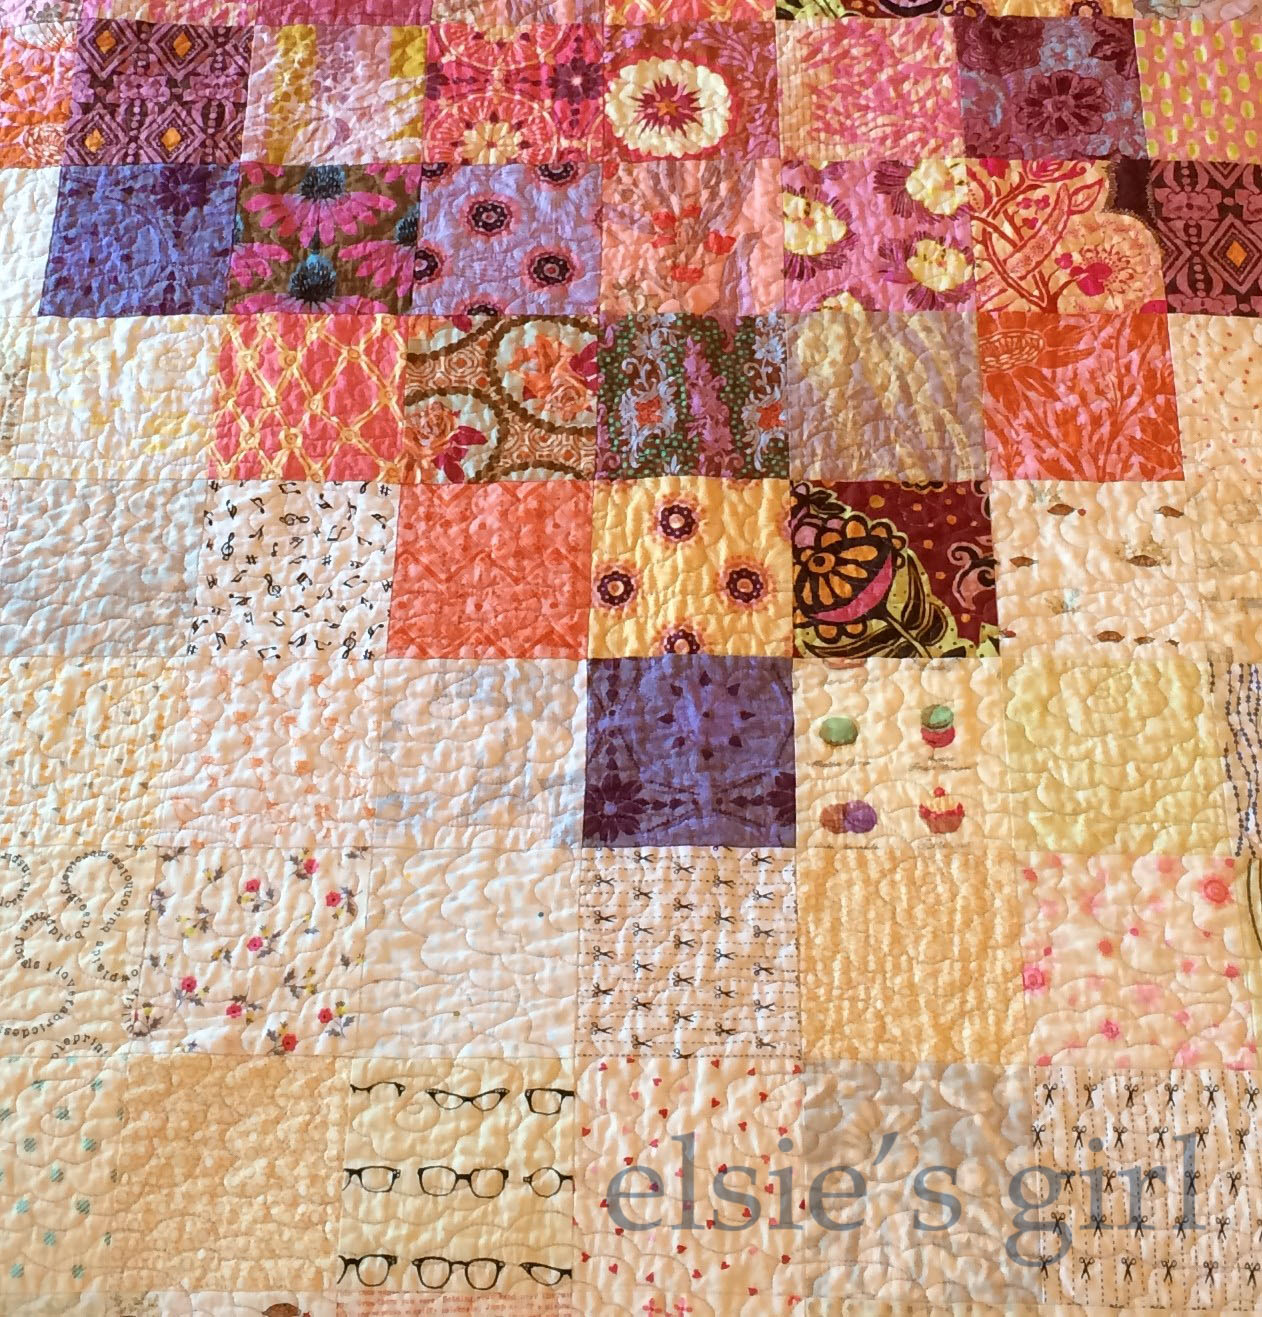 Elsie S Girl Pixelated Heart Quilt